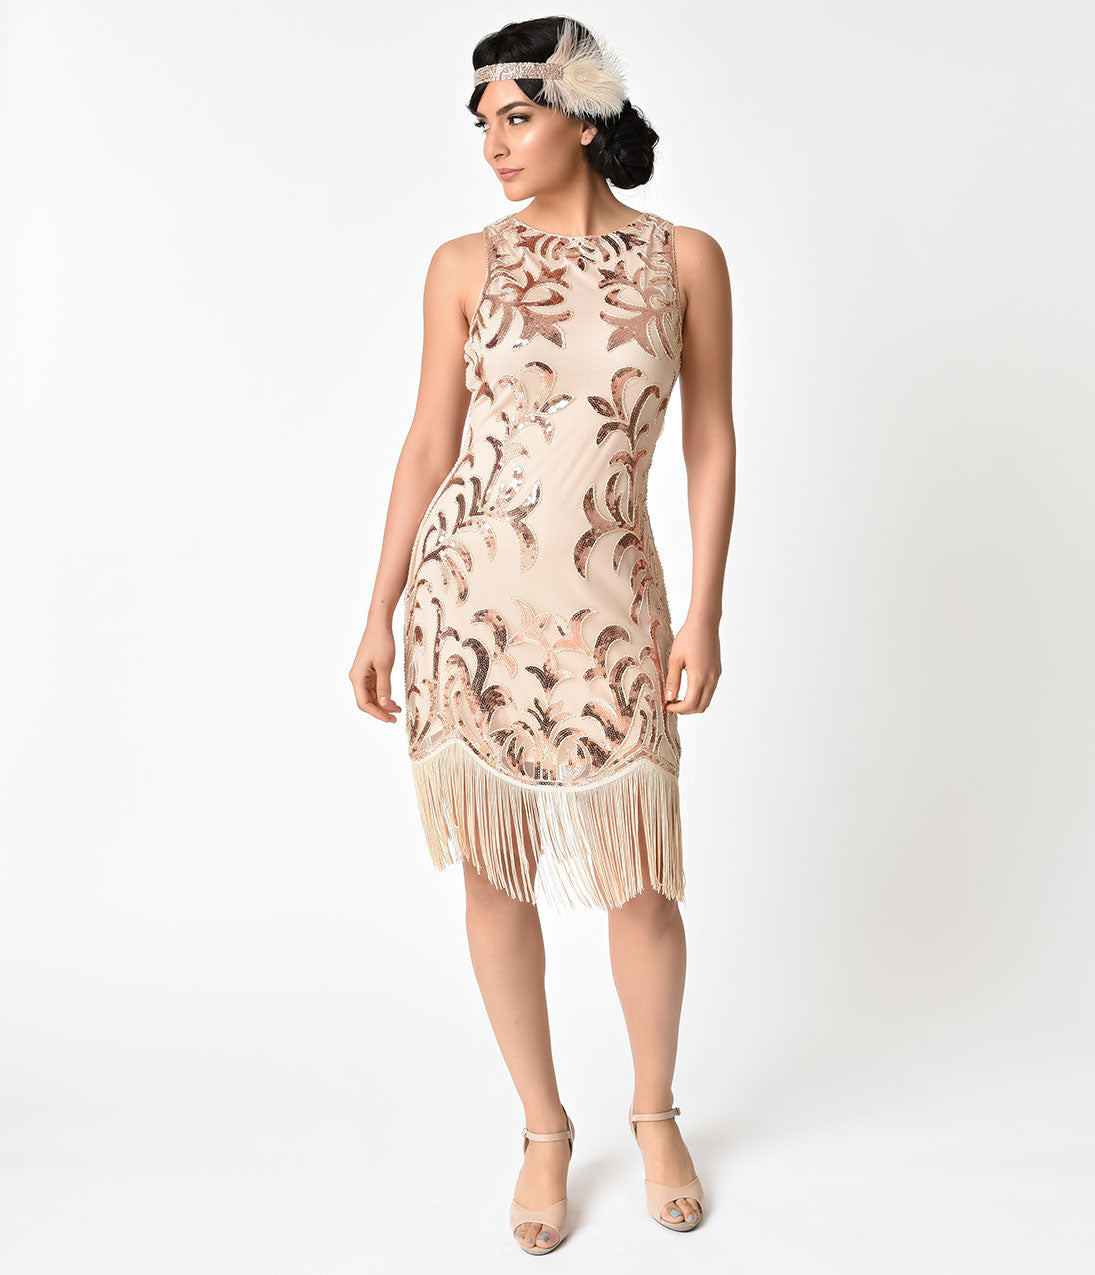 Downton Abbey Inspired Dresses Unique Vintage 1920S Rose Gold Sequin Nikita Flapper Dress $28.00 AT vintagedancer.com